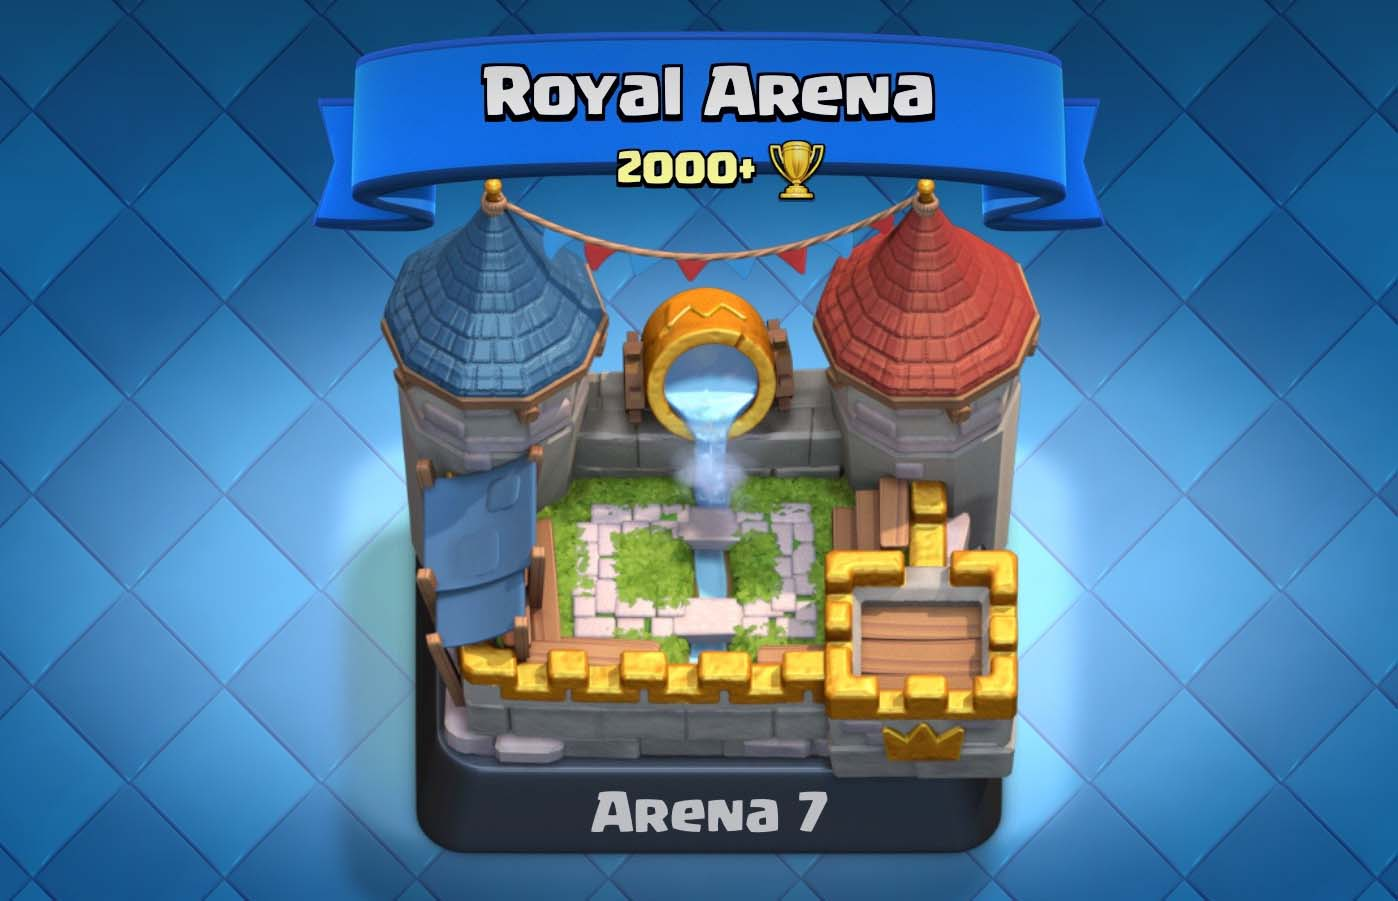 Best Arena 4 To 6 Deck Clash Royale Tactics Guide